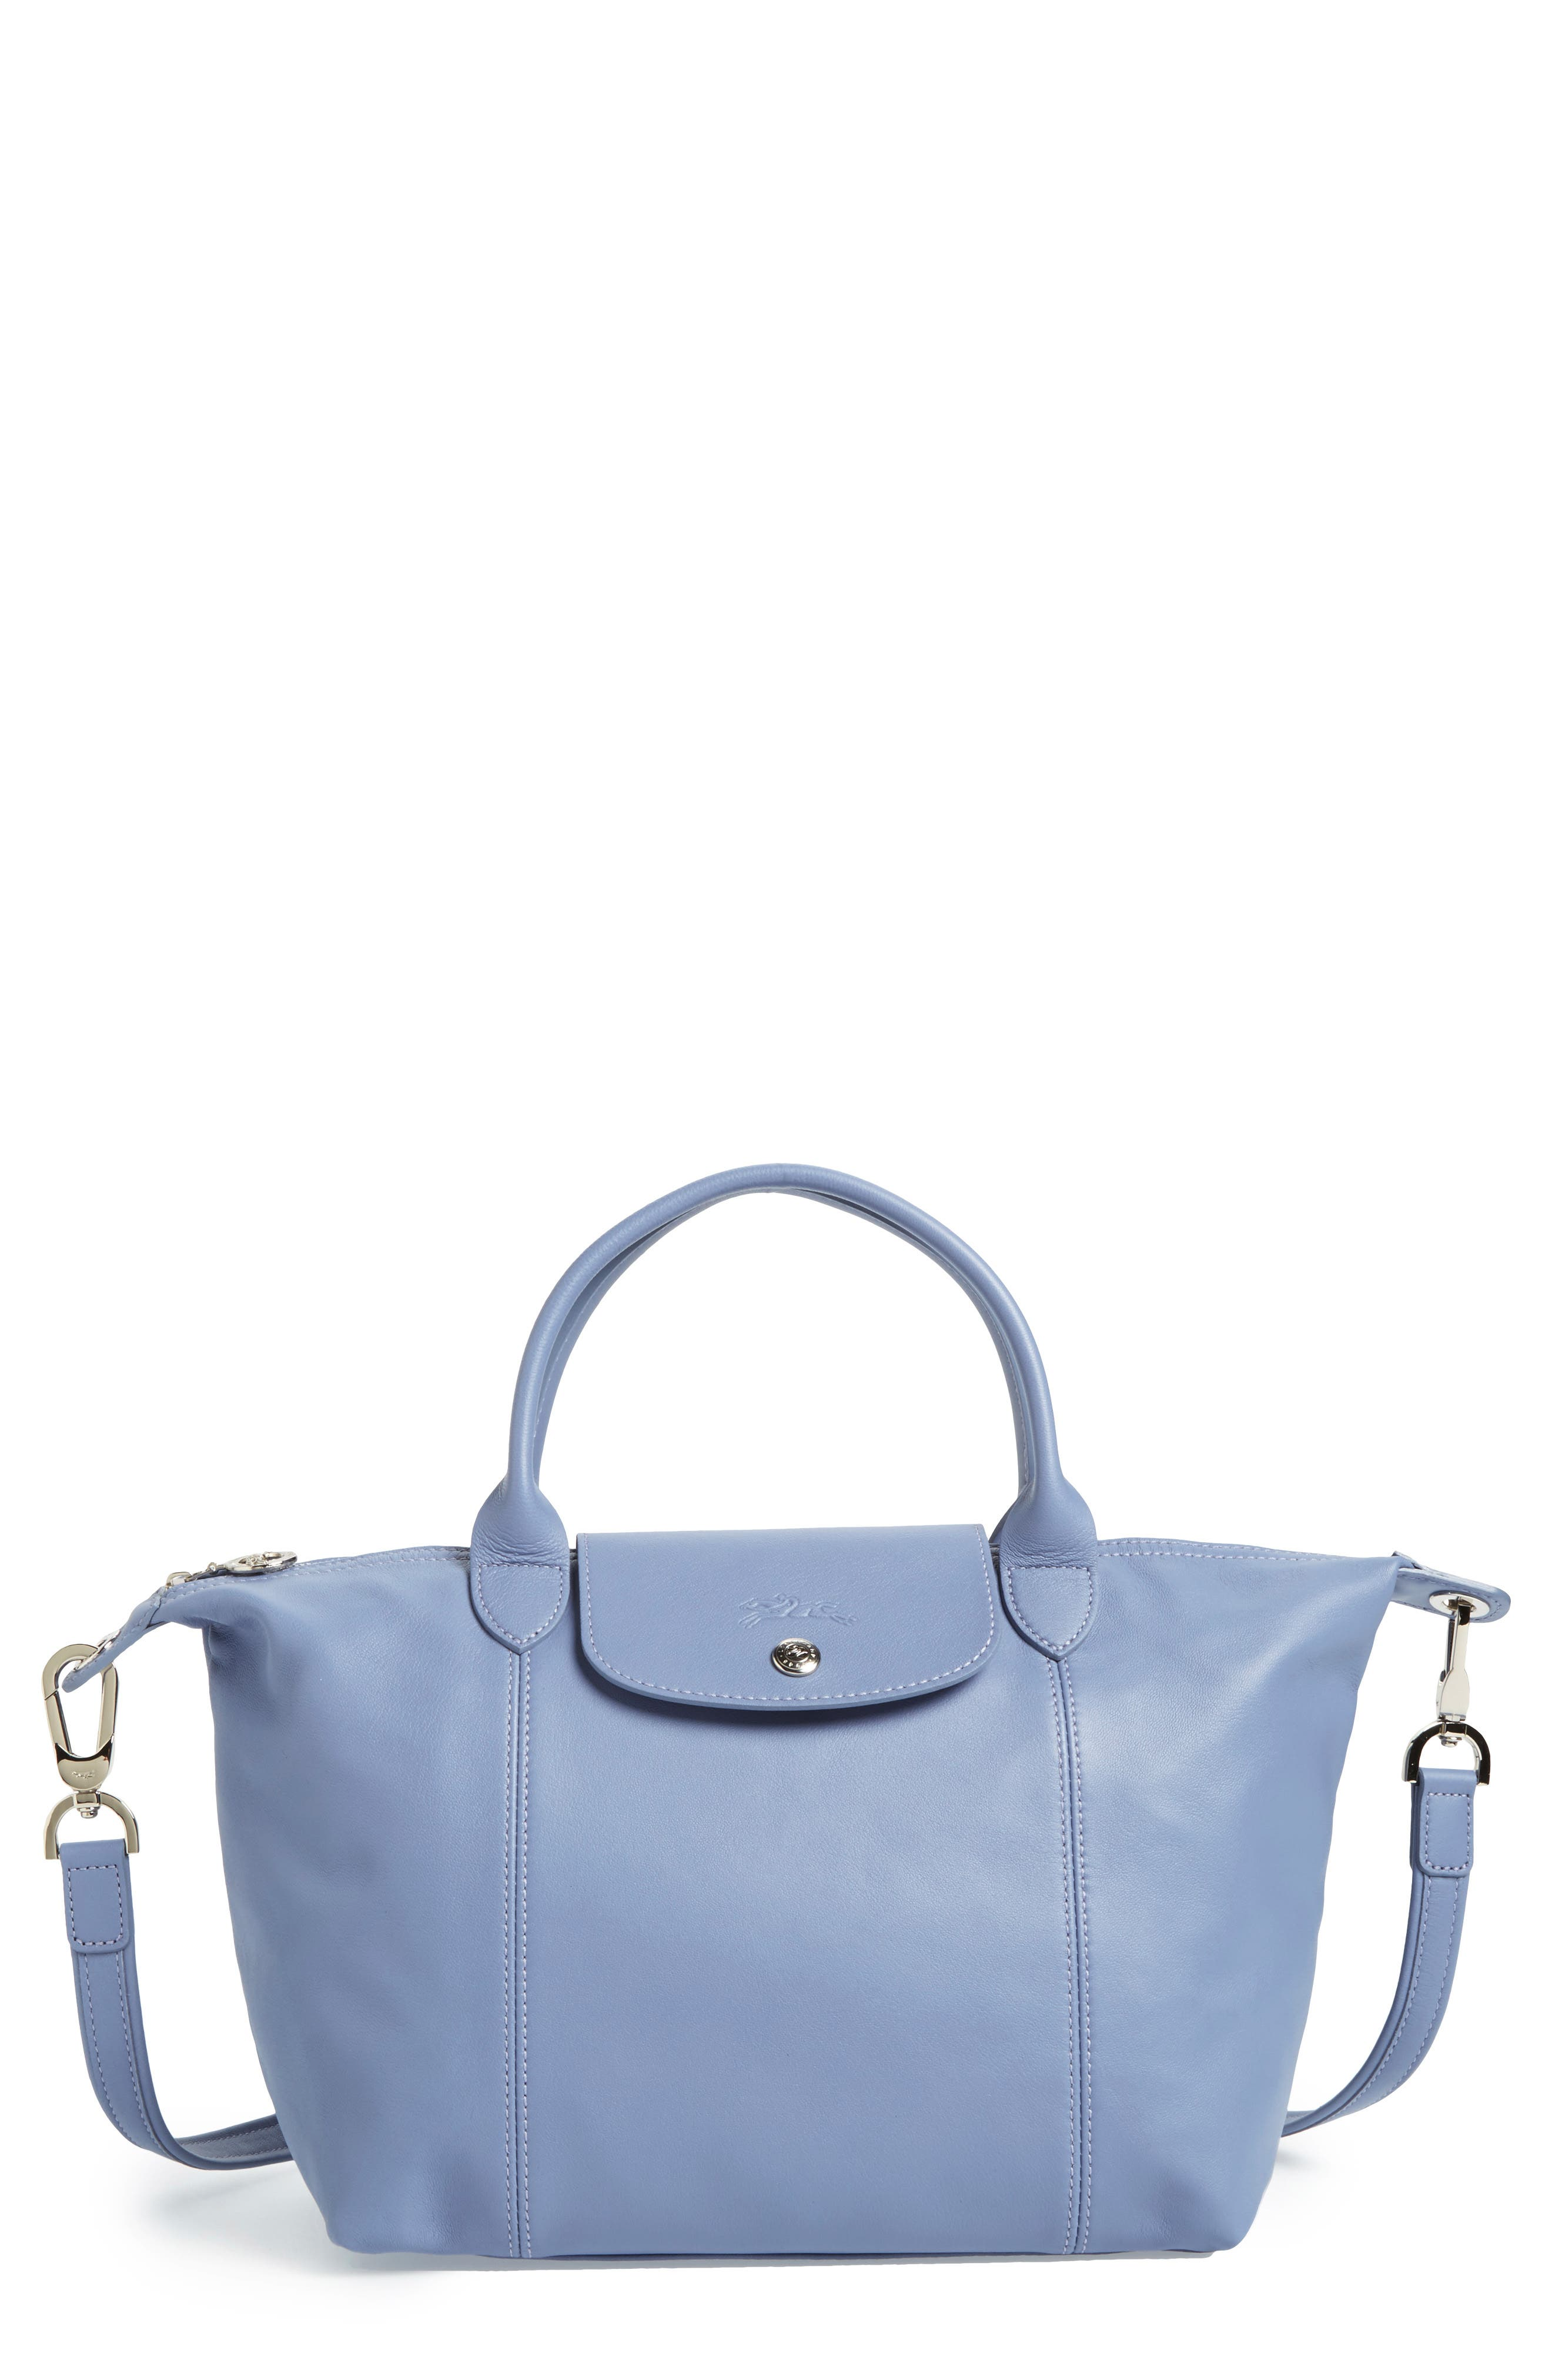 Small 'Le Pliage Cuir' Leather Top Handle Tote,                             Main thumbnail 16, color,